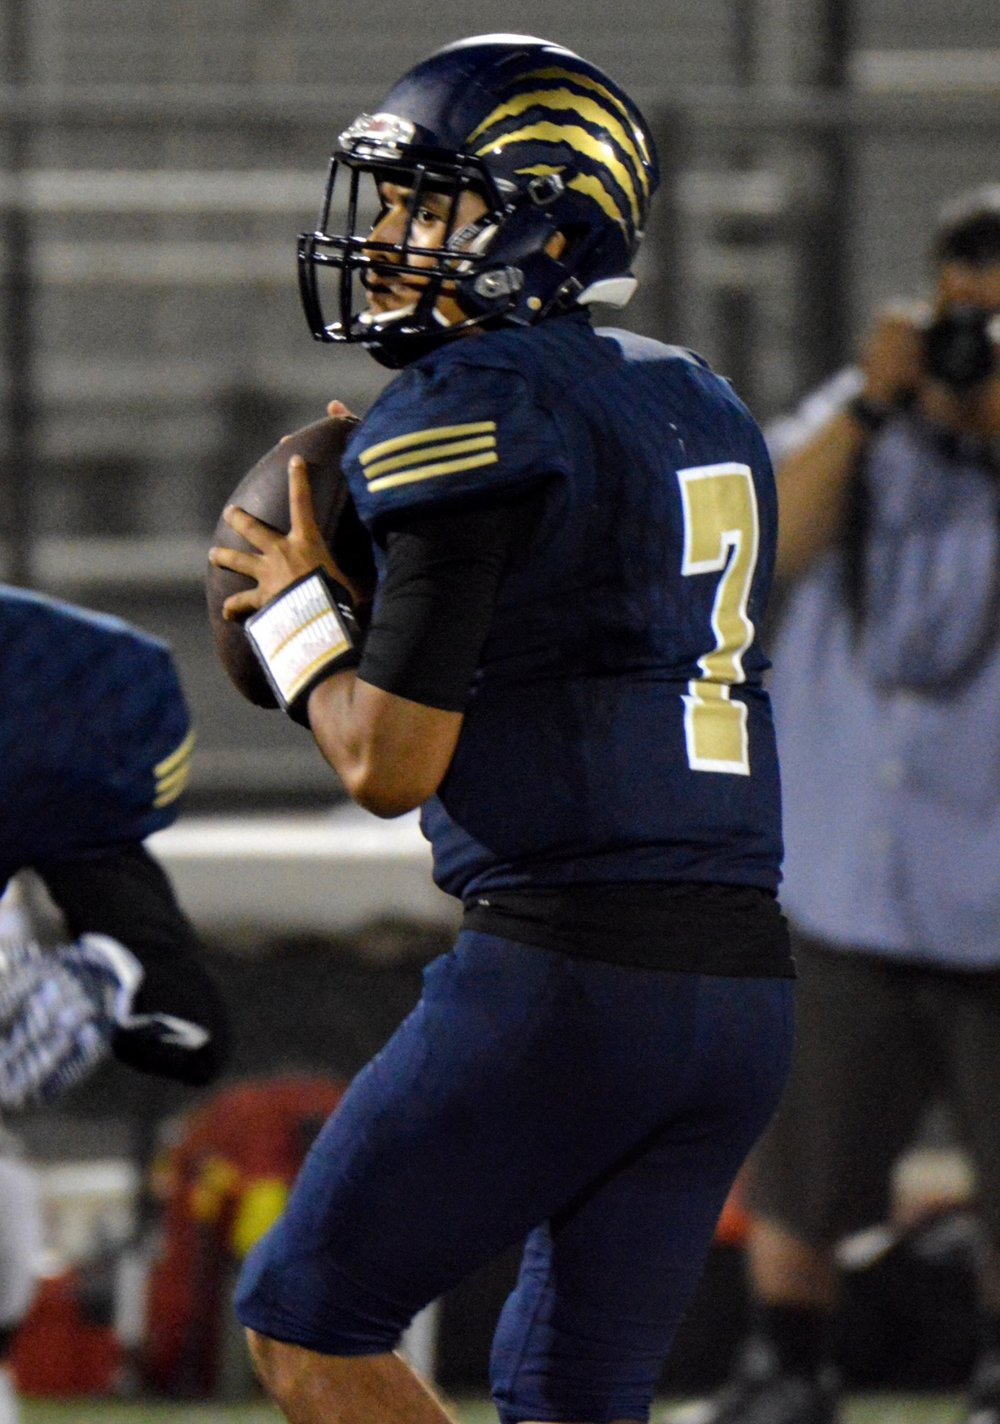 Warren High quarterback Chris Venegas threw for 296 yards and four touchdowns against Don Lugo last week. Photo courtesy Chris Venegas Sr.